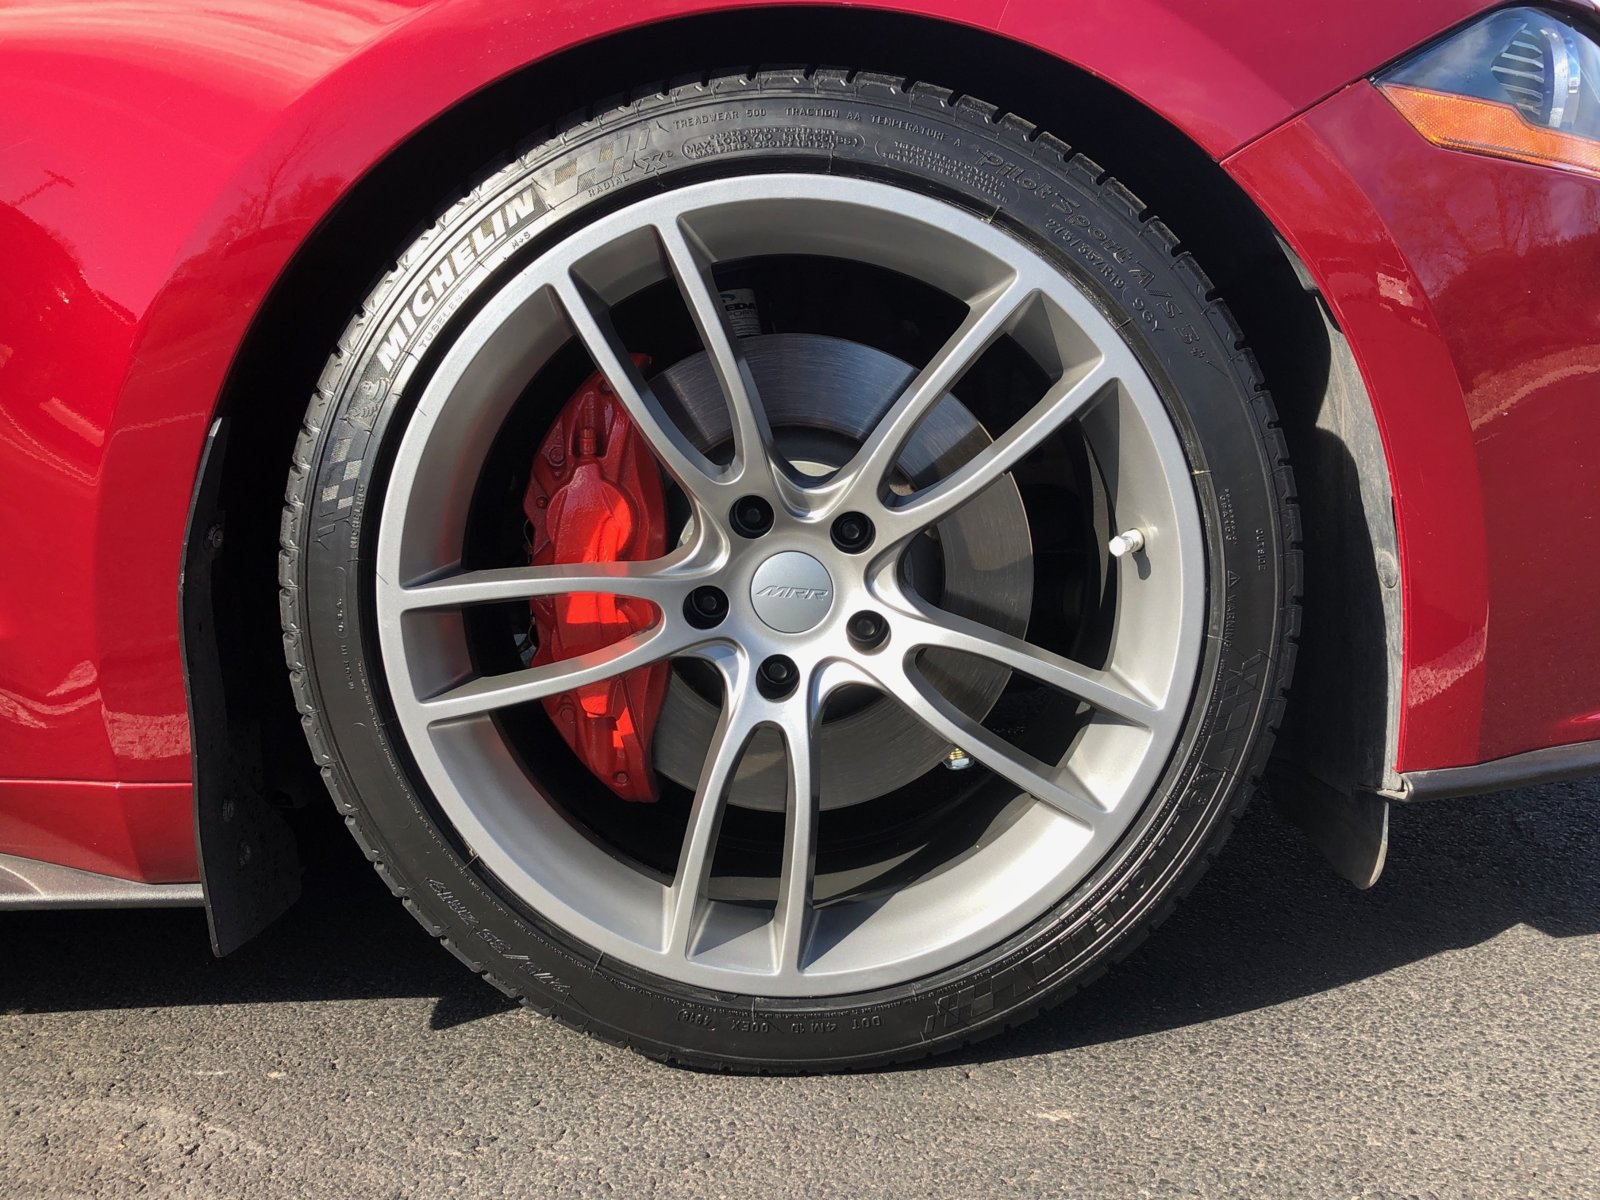 ruby-red-ford-mustang-gt-s550-mrr-m600-matte-gunmetal-concave-rotory-forged-wheels-1-jpg.jpg